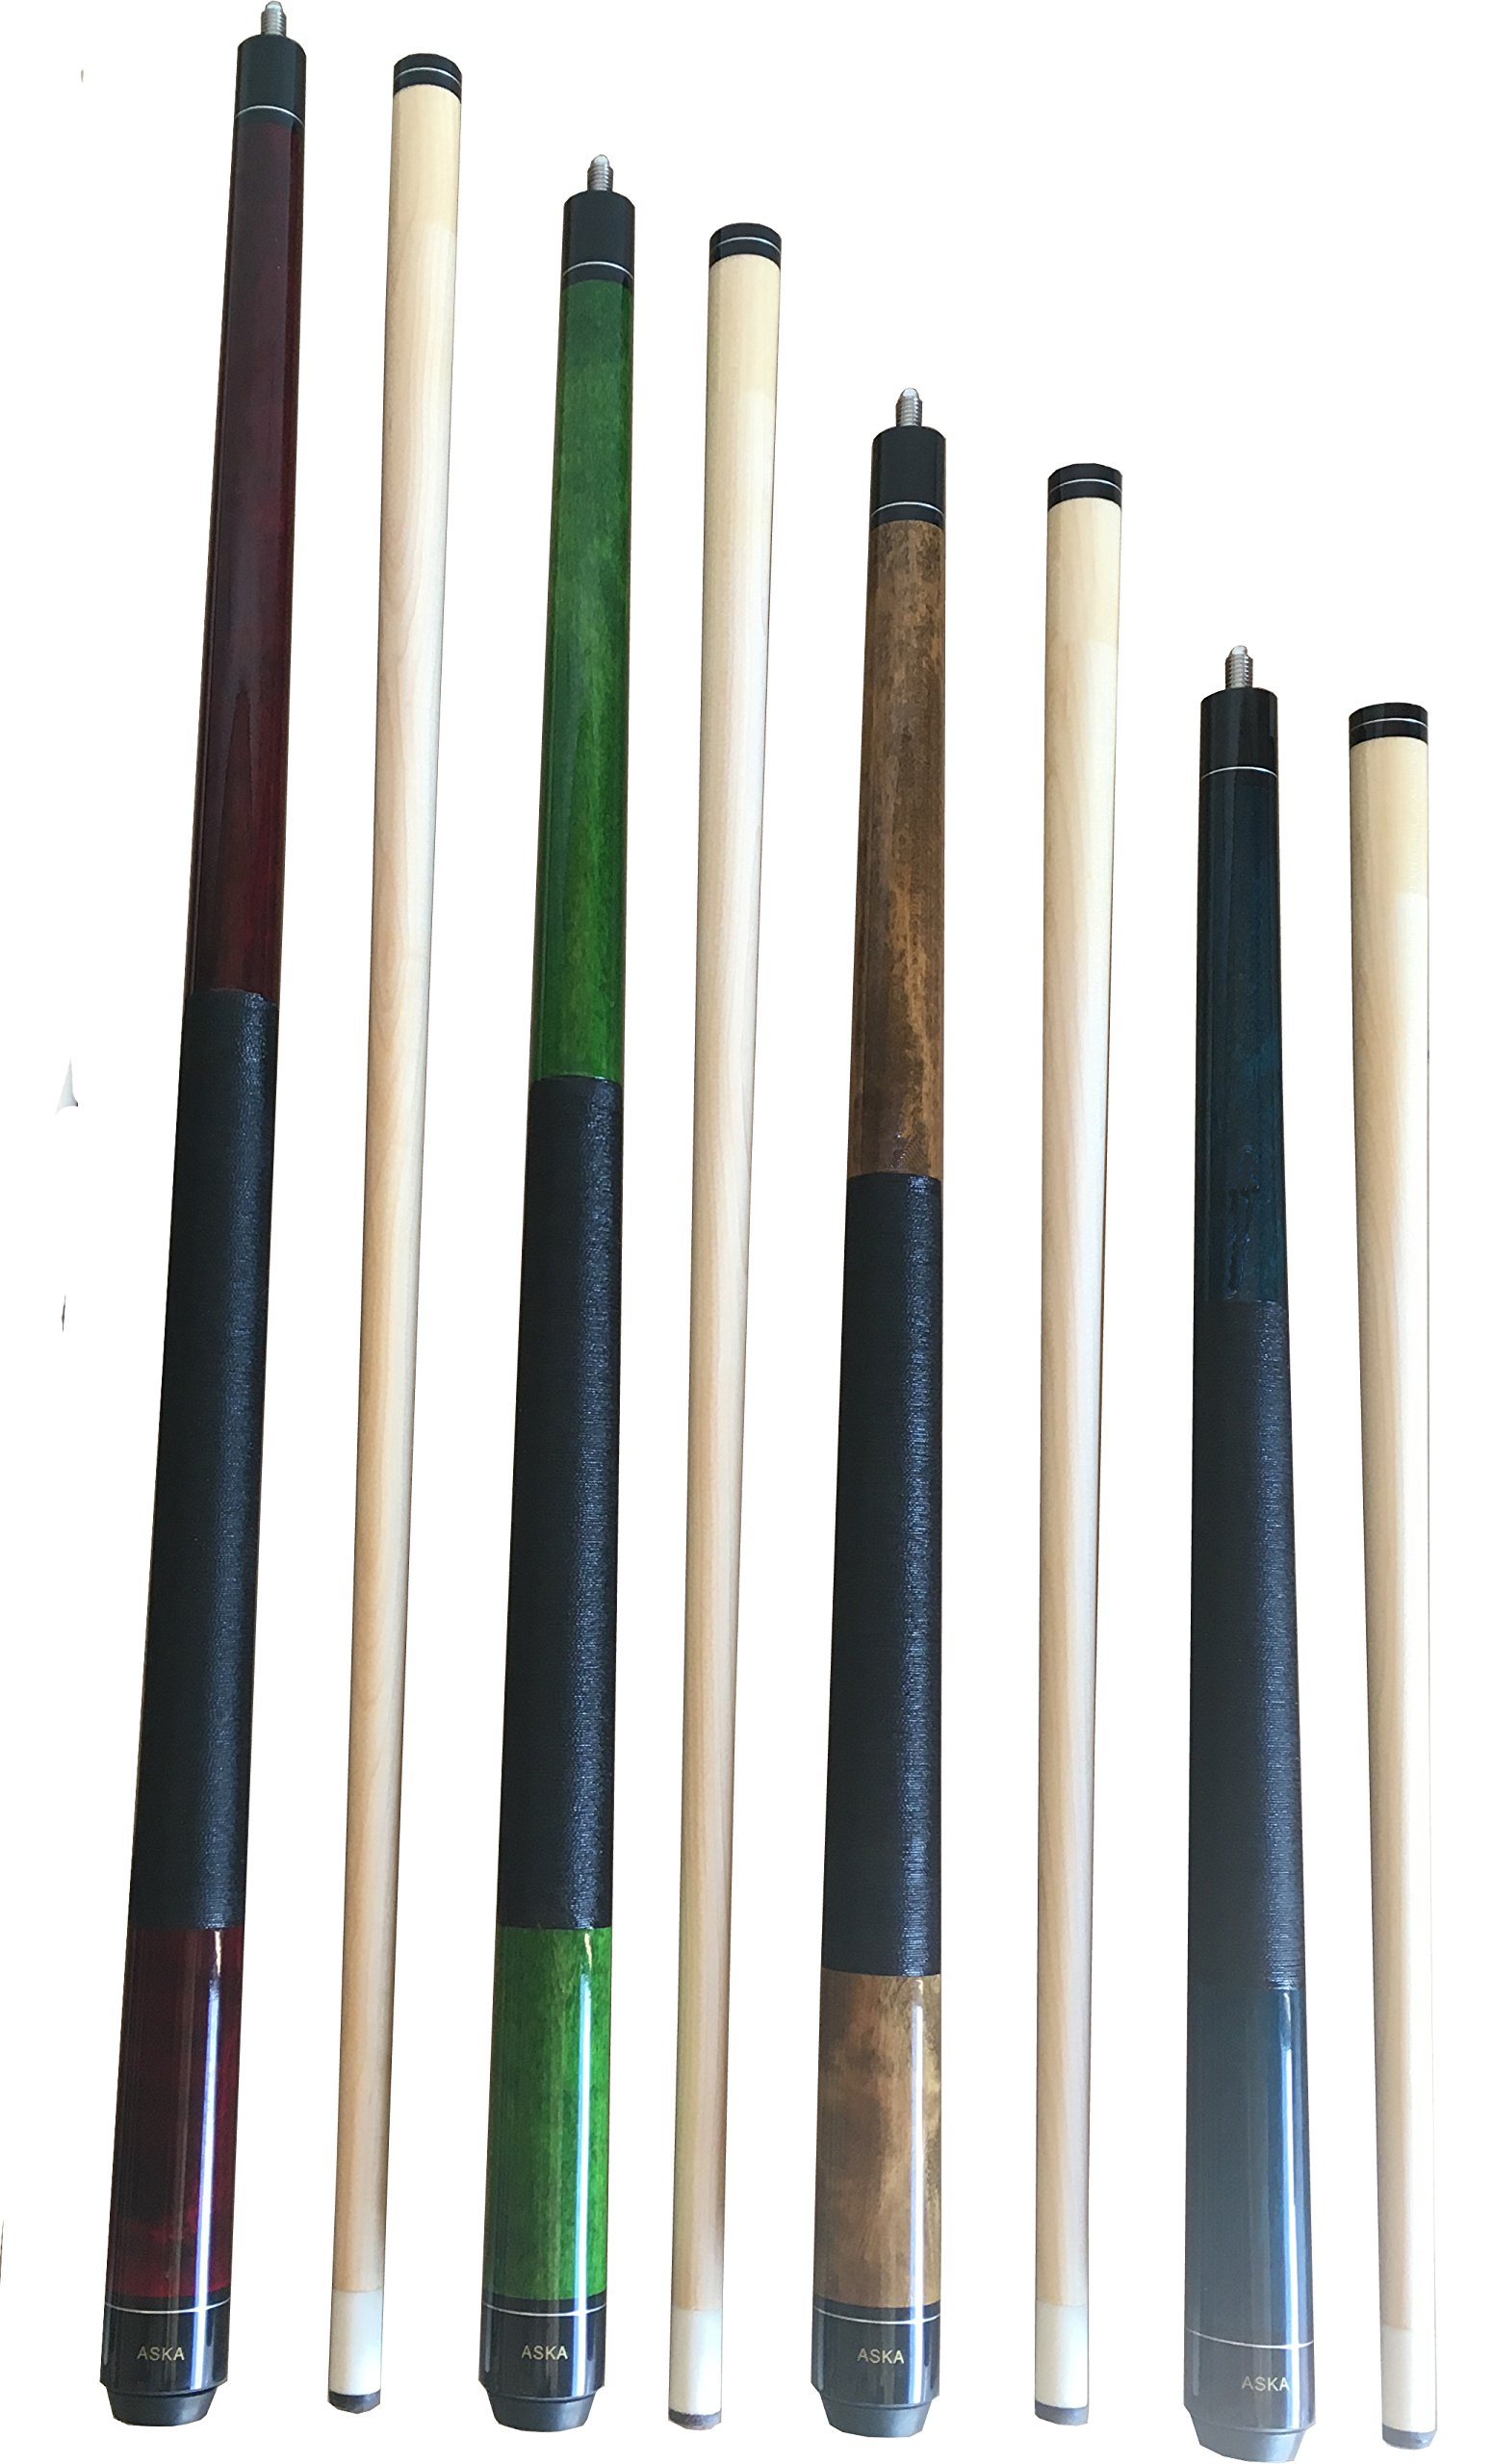 Aska Set of 4 Mixed Length Cues LS4, Canadian Hard Rock Maple Billiard Pool Cue Sticks, Short, Kids Cues